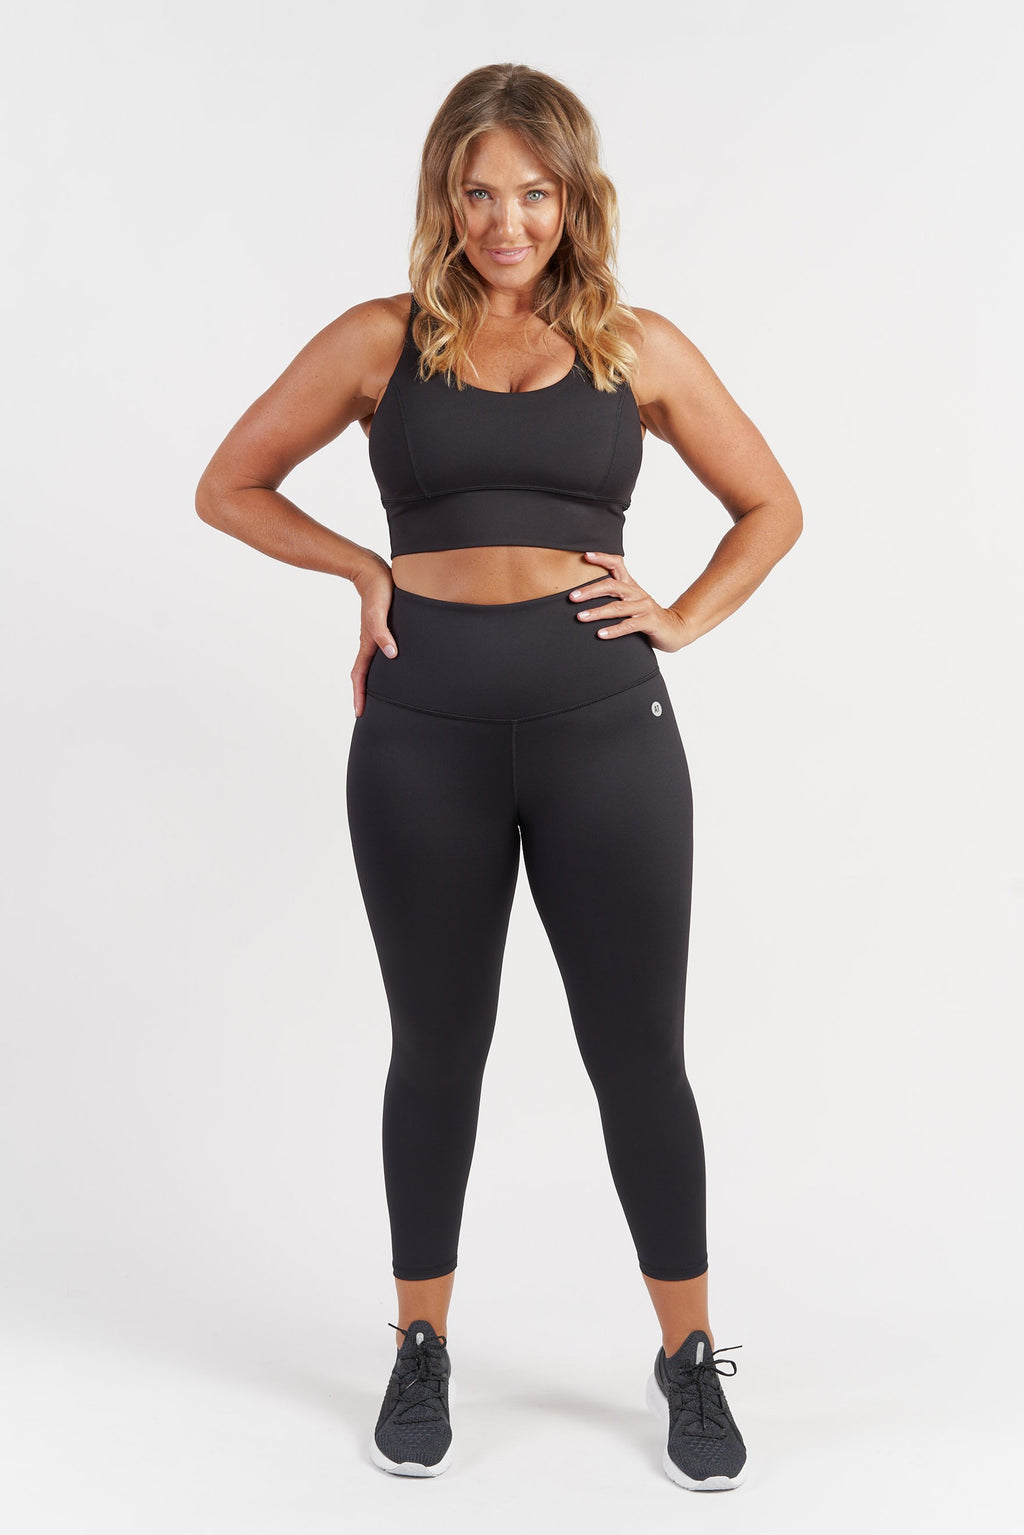 Ultra High Waist 7/8 Length Tight - Black from Active Truth USA